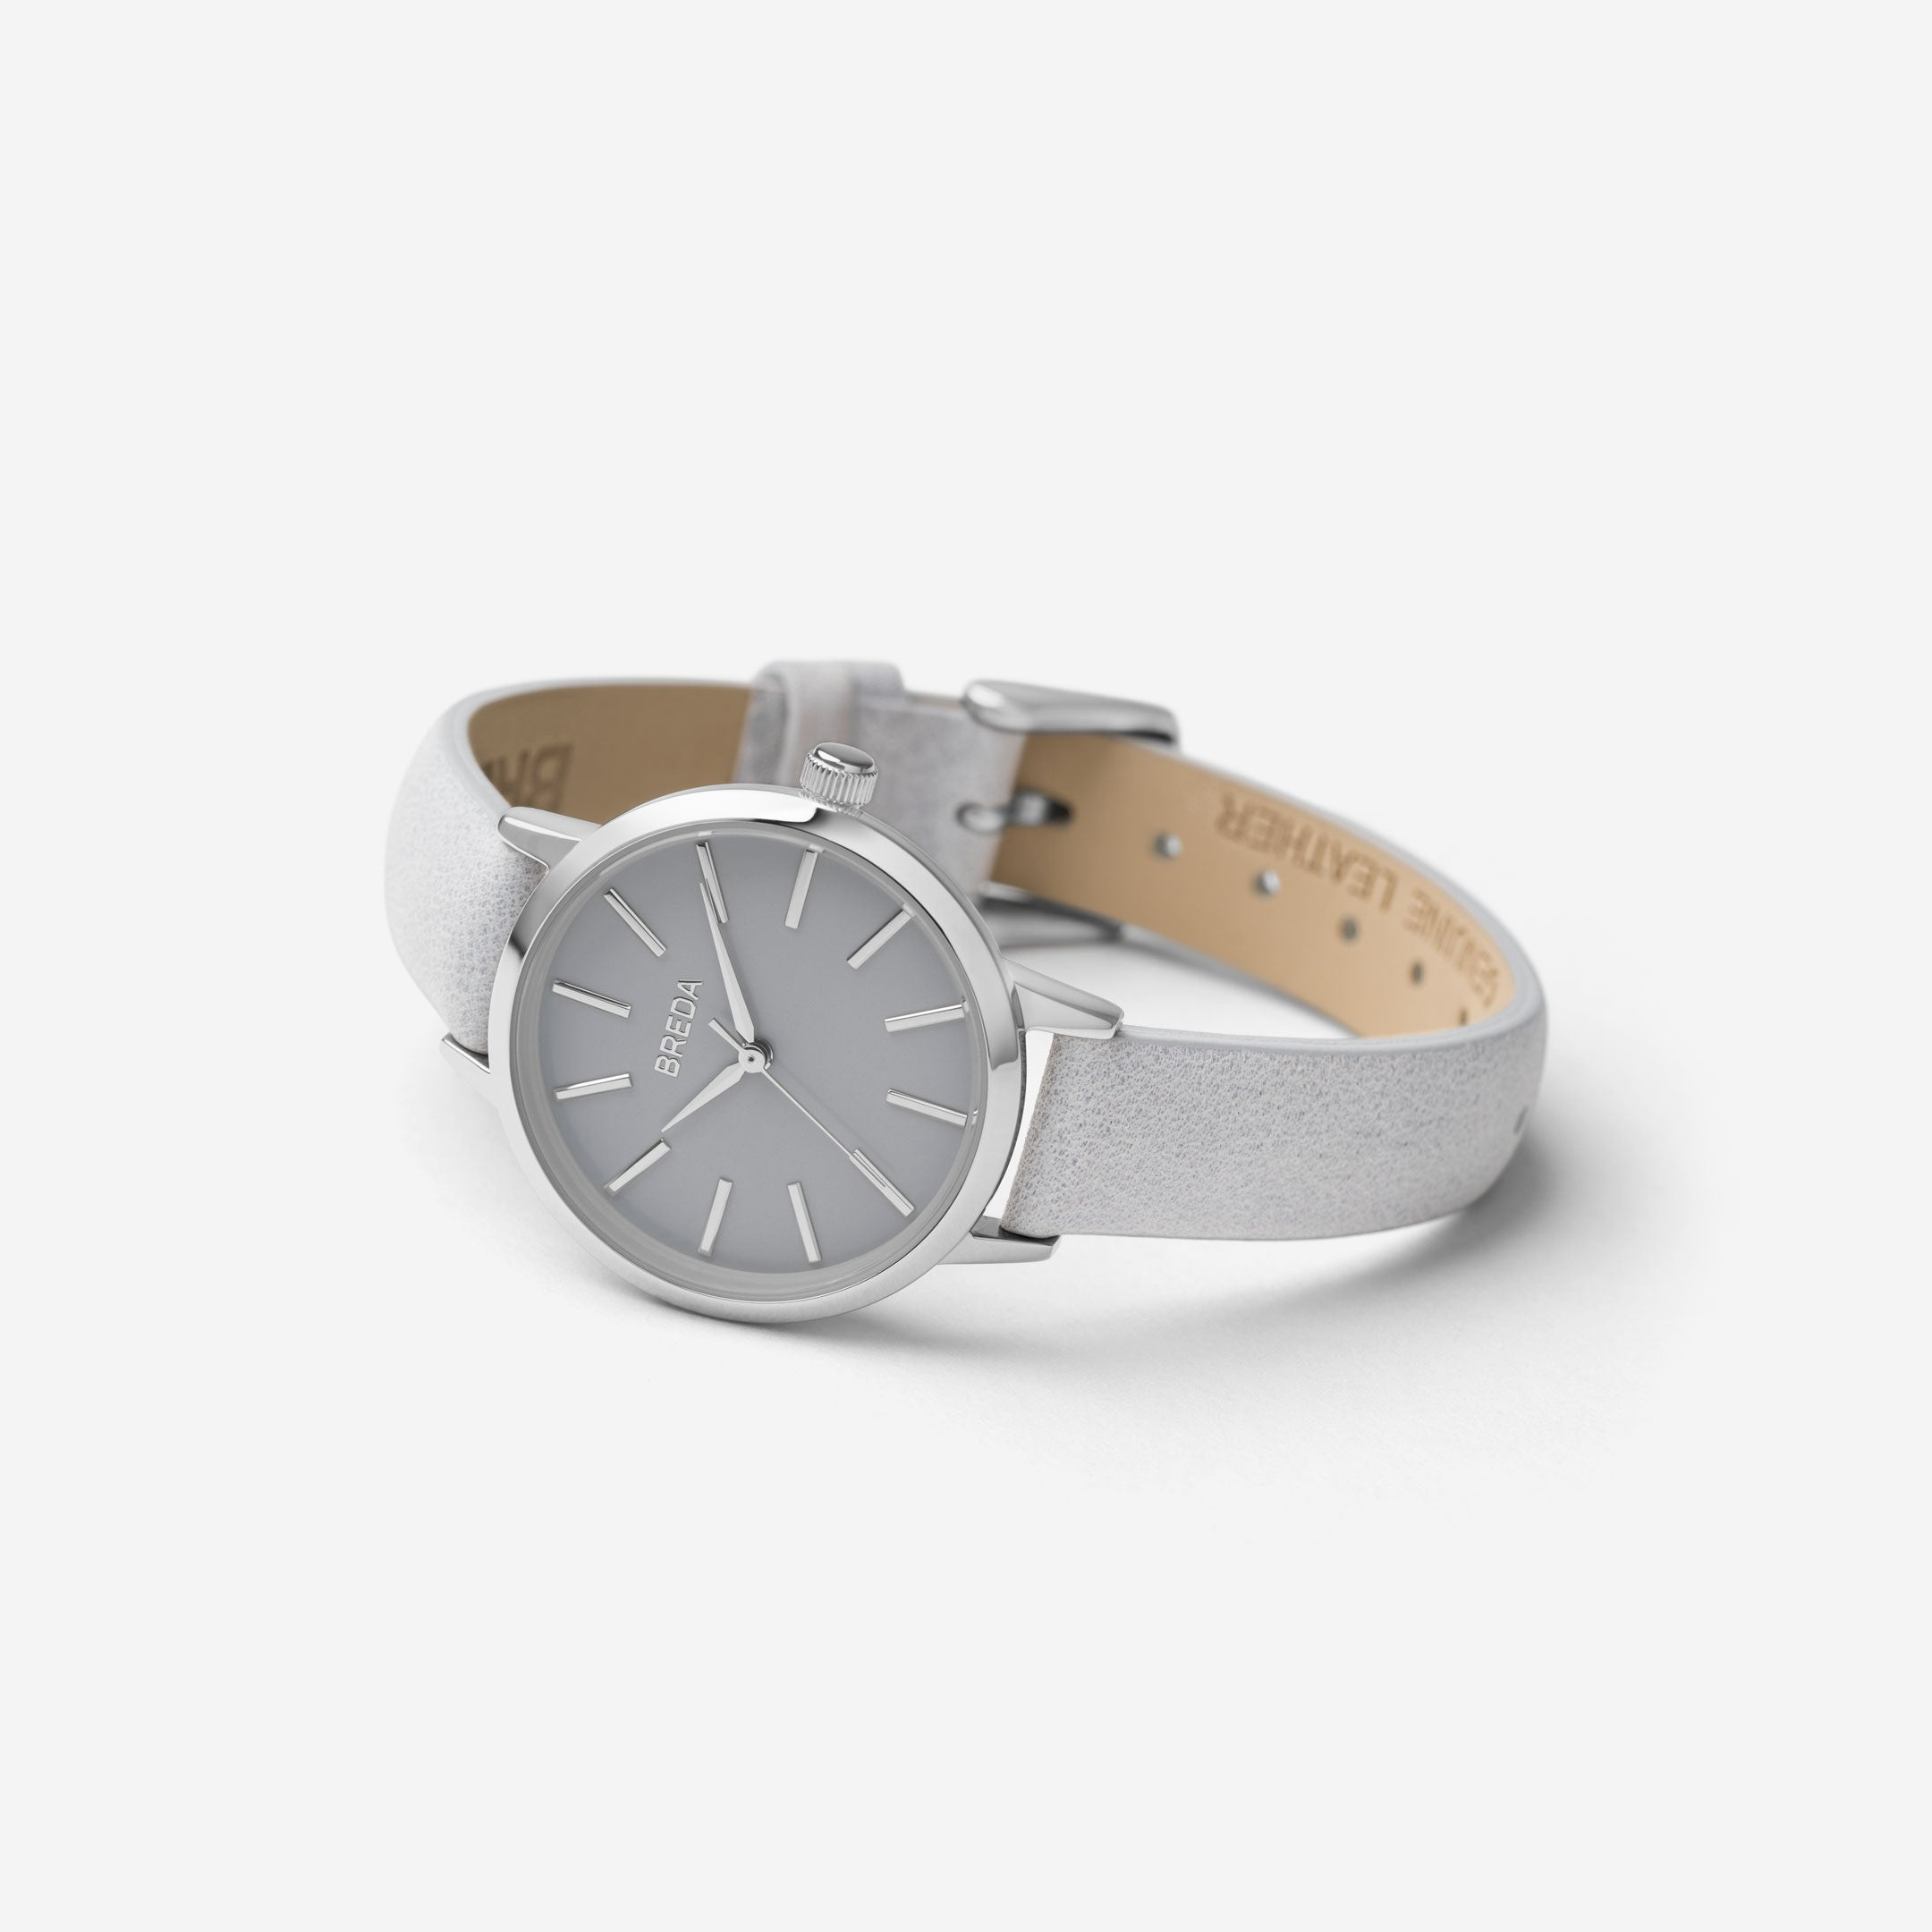 //cdn.shopify.com/s/files/1/0879/6650/products/breda-petite-joule-1734e-silver-gray-watch-angle_1024x1024.jpg?v=1530902639